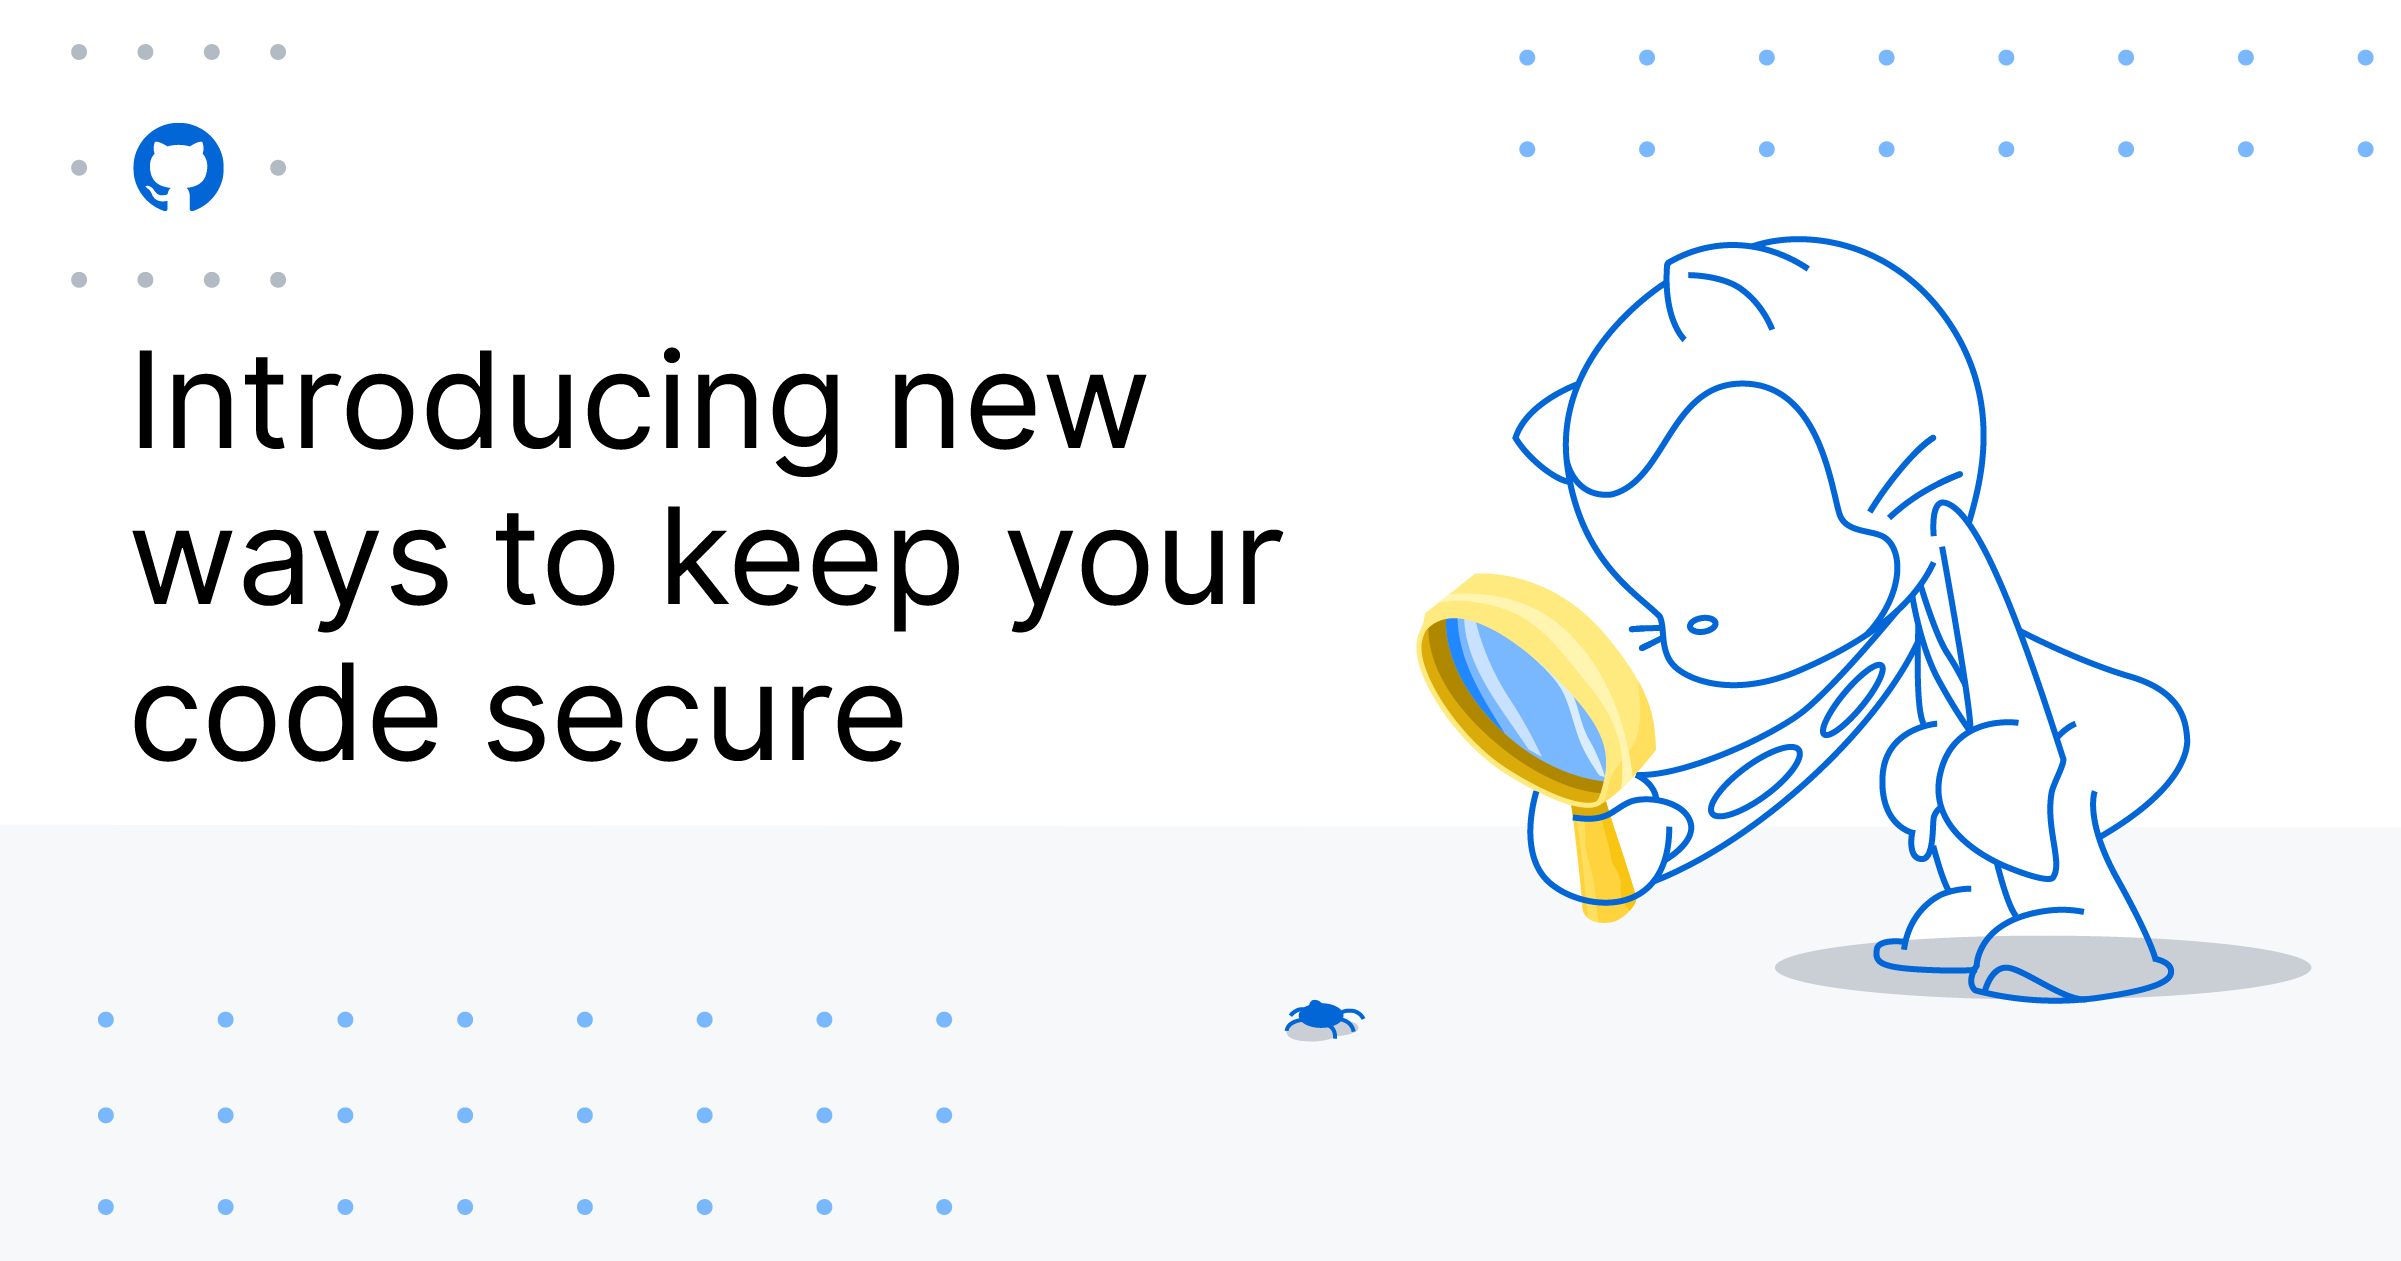 Introducing new ways to keep your code secure